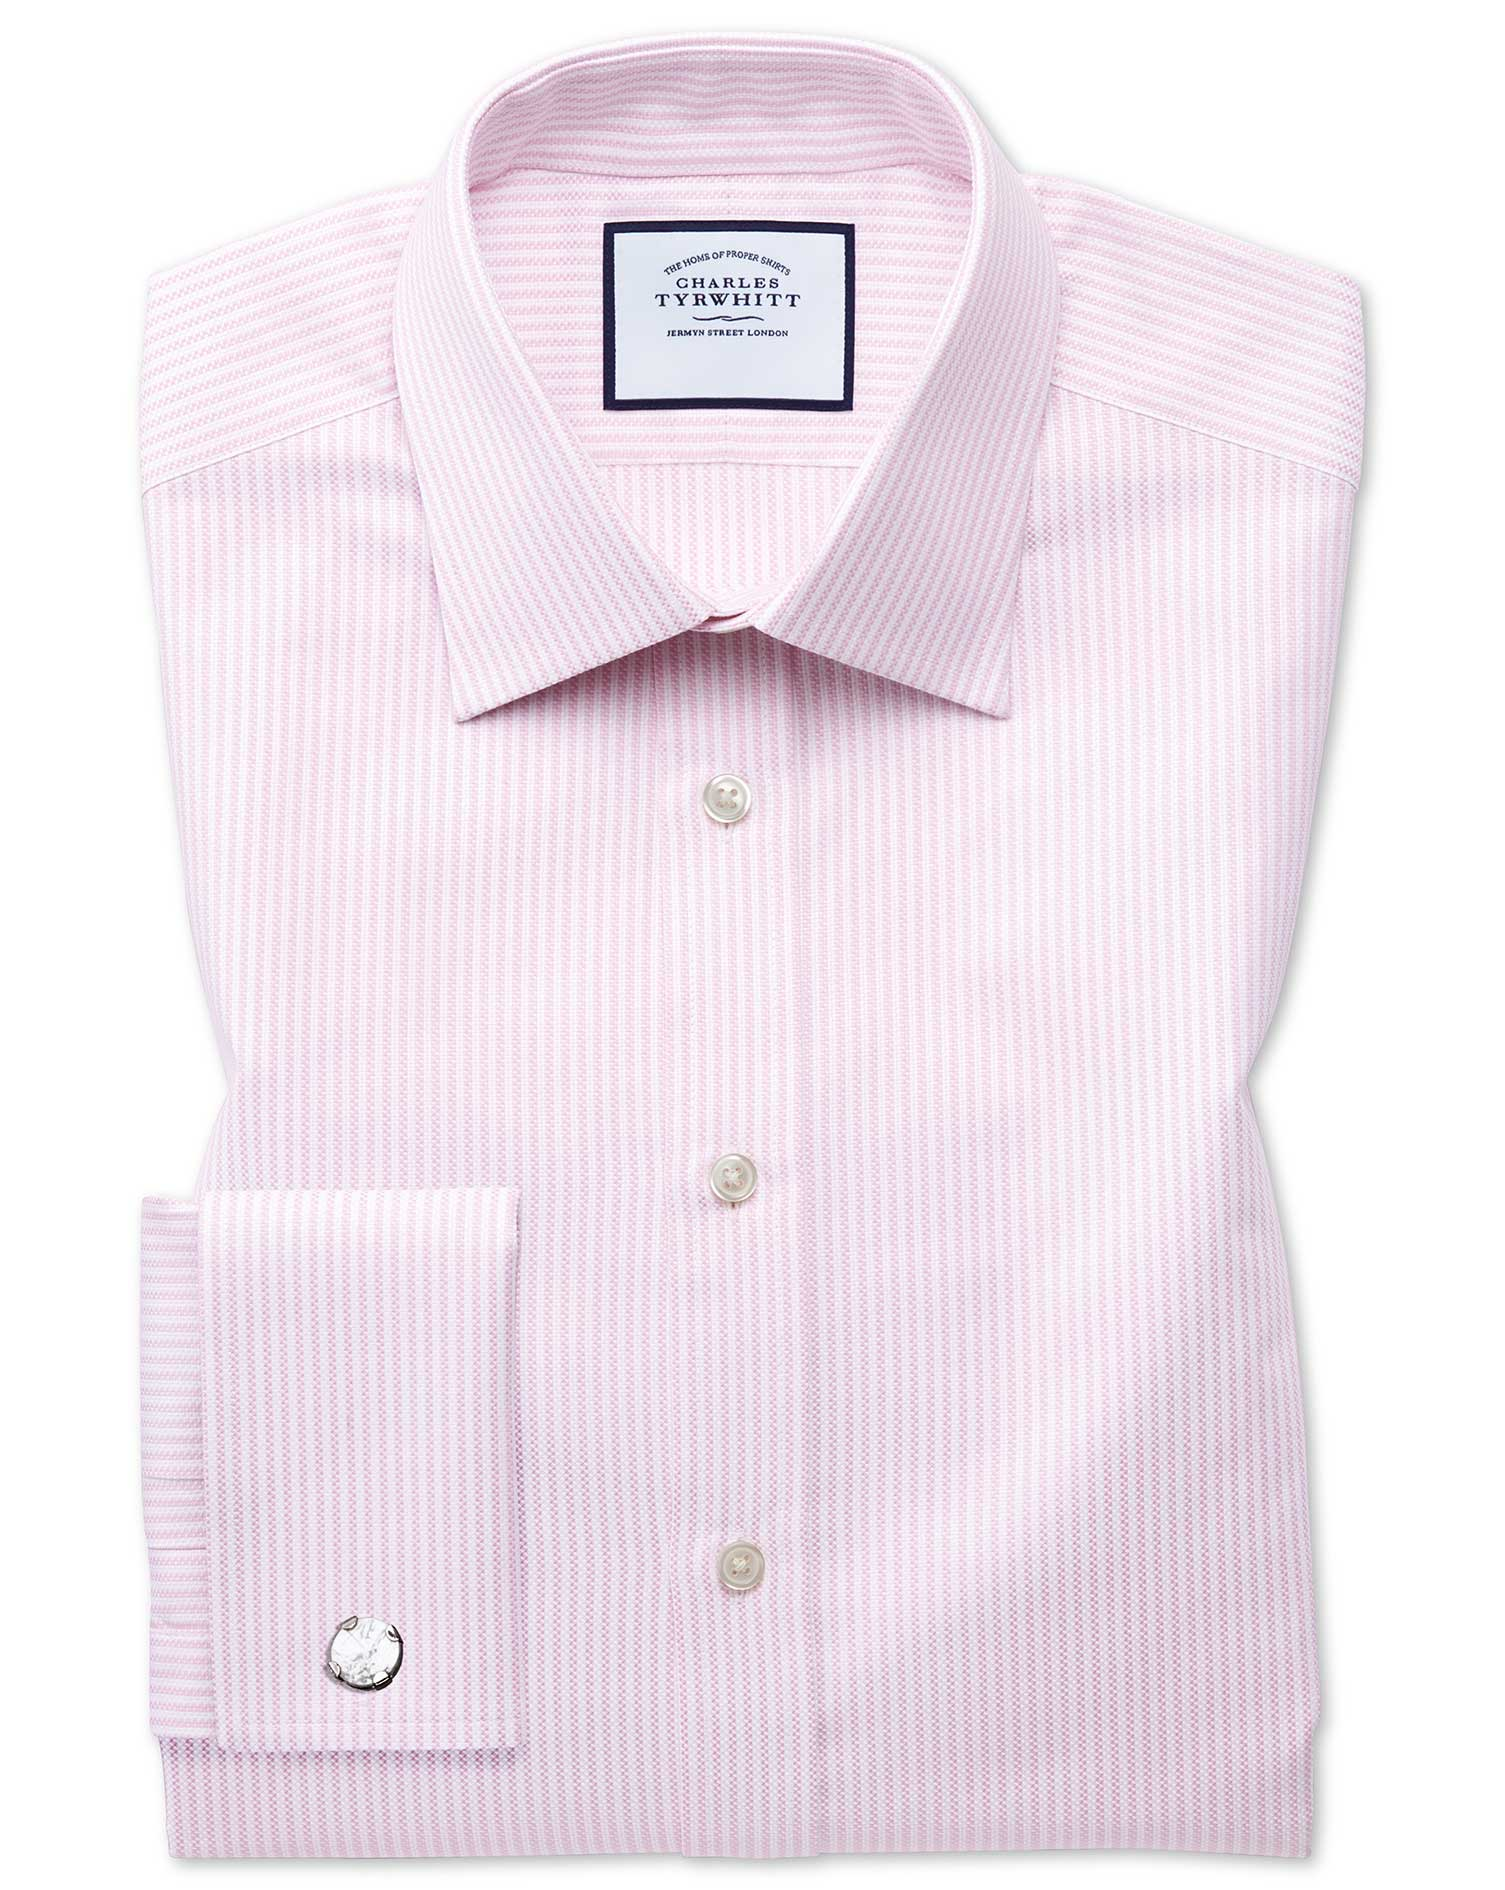 Slim Fit Egyptian Cotton Royal Oxford Pink and White Stripe Formal Shirt Single Cuff Size 16/35 by C